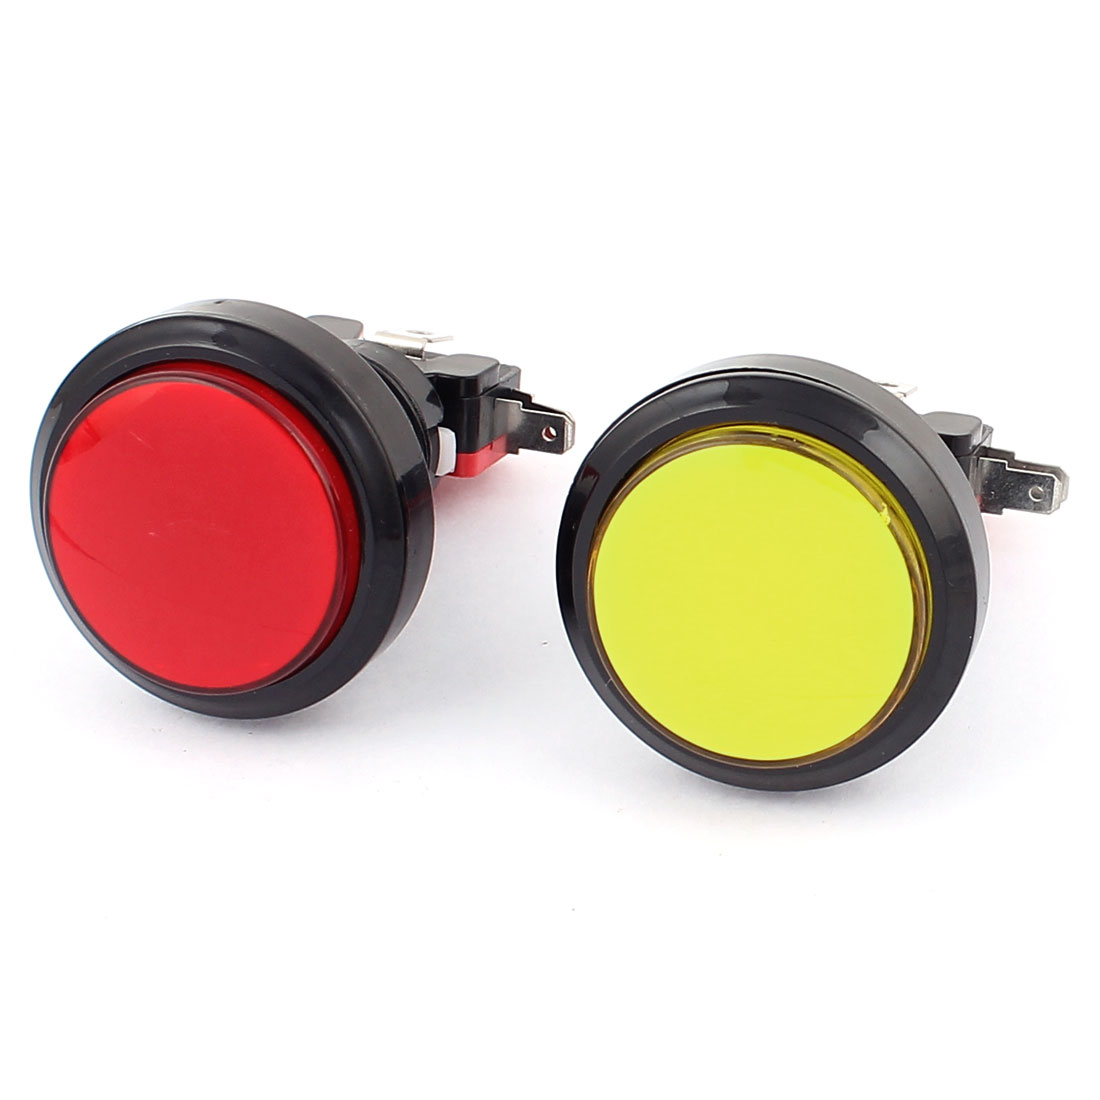 23mm Dia Thread SPDT Momentary Arcade Game Machine Push Button Switch 2Pcs